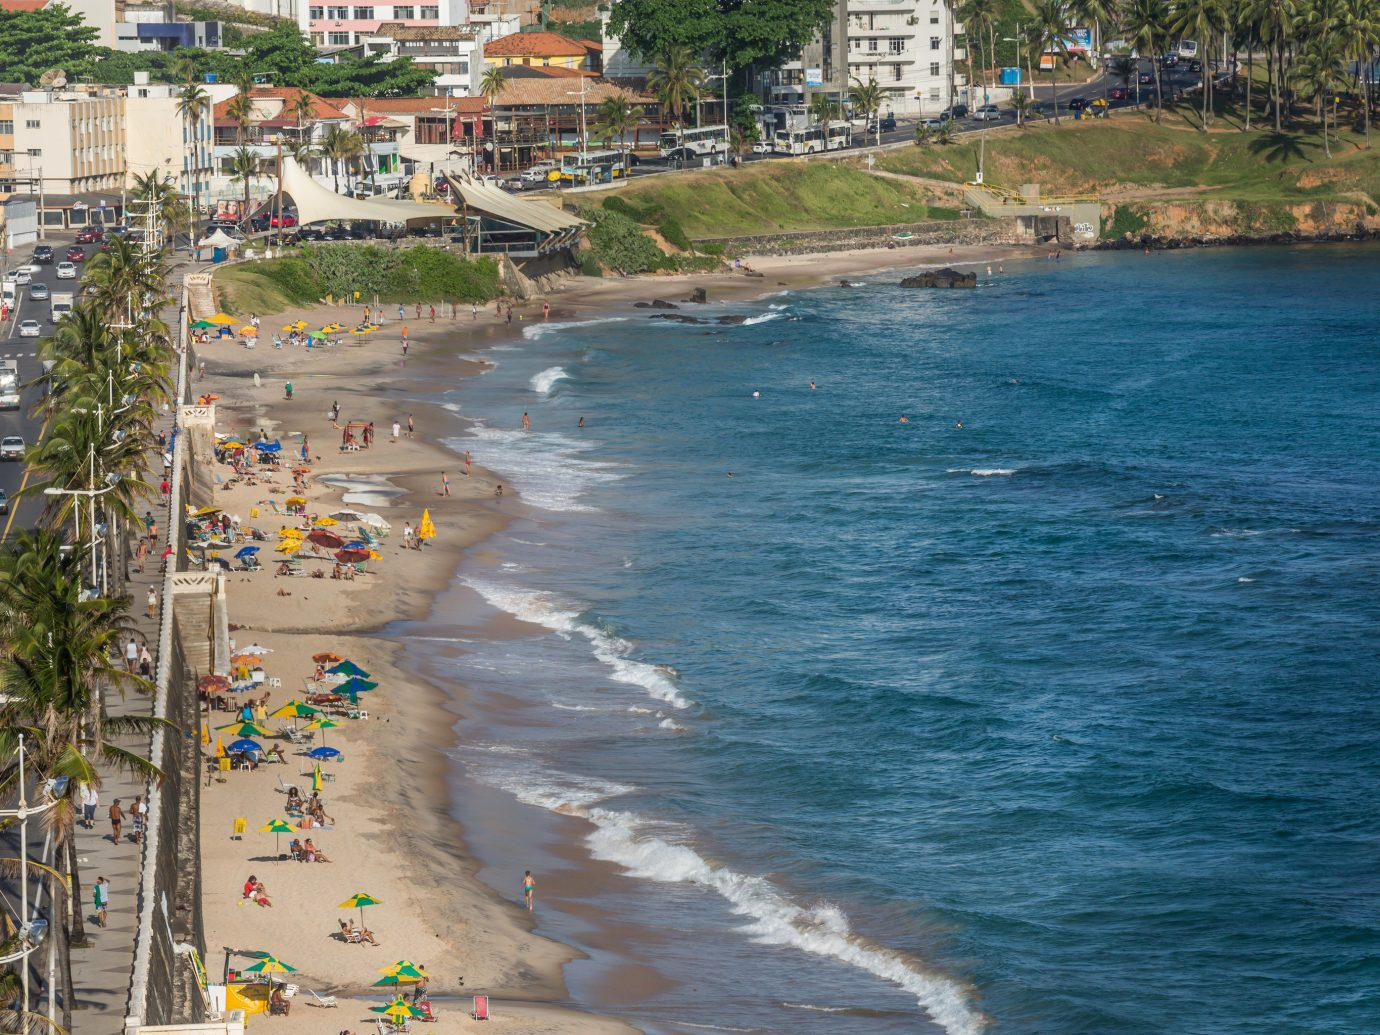 Beaches Brazil Trip Ideas outdoor body of water Beach Coast Sea shore vacation bay aerial photography waterway cape several